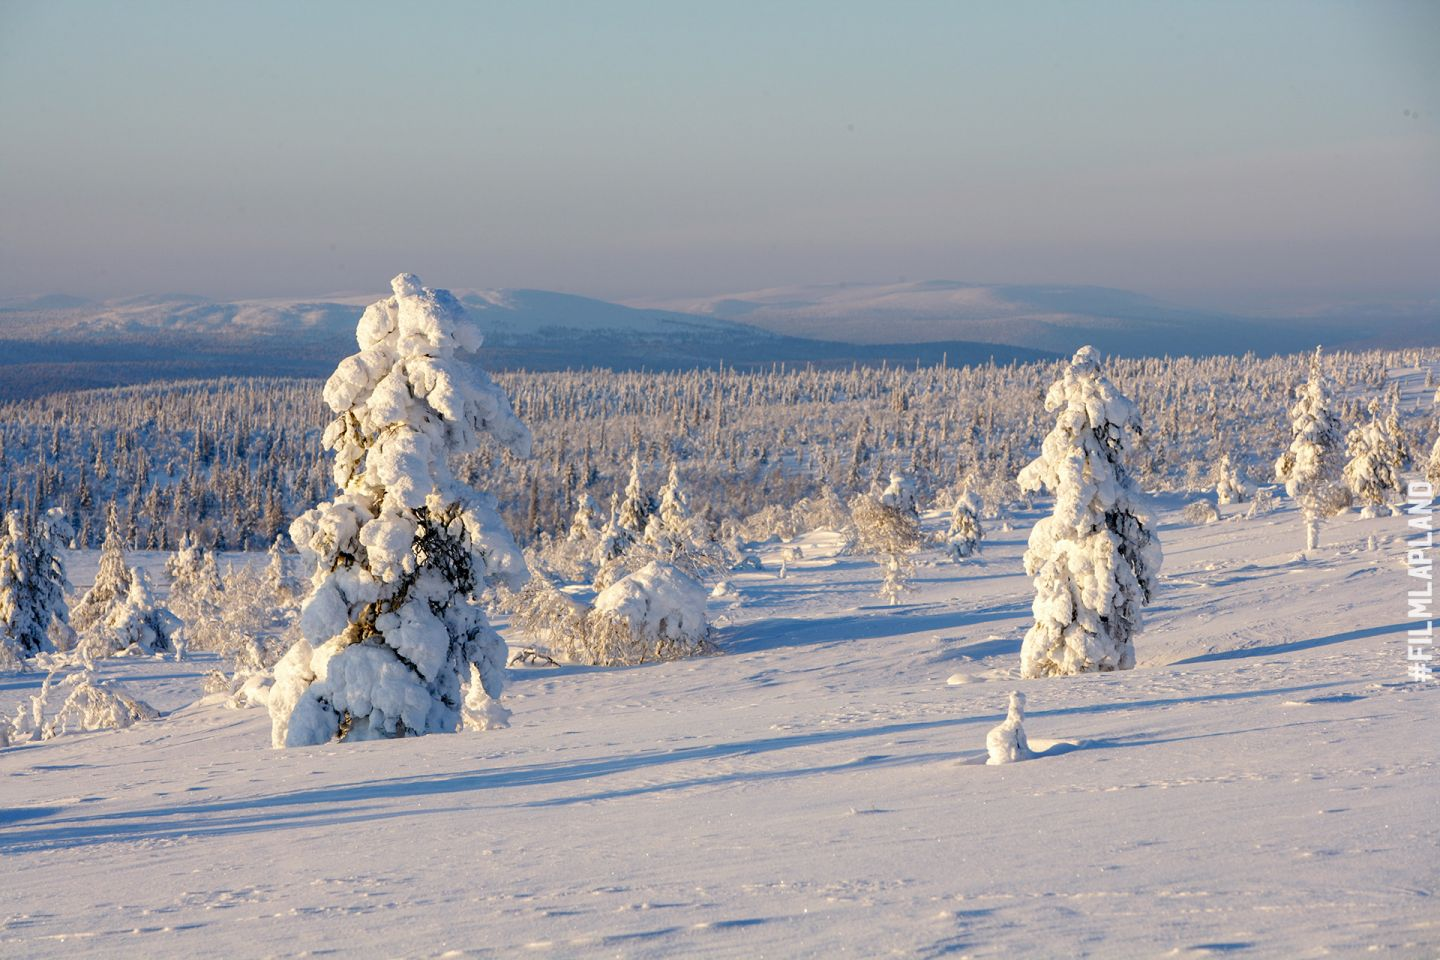 Snow-crowned trees on a hillside in Inari, Finland